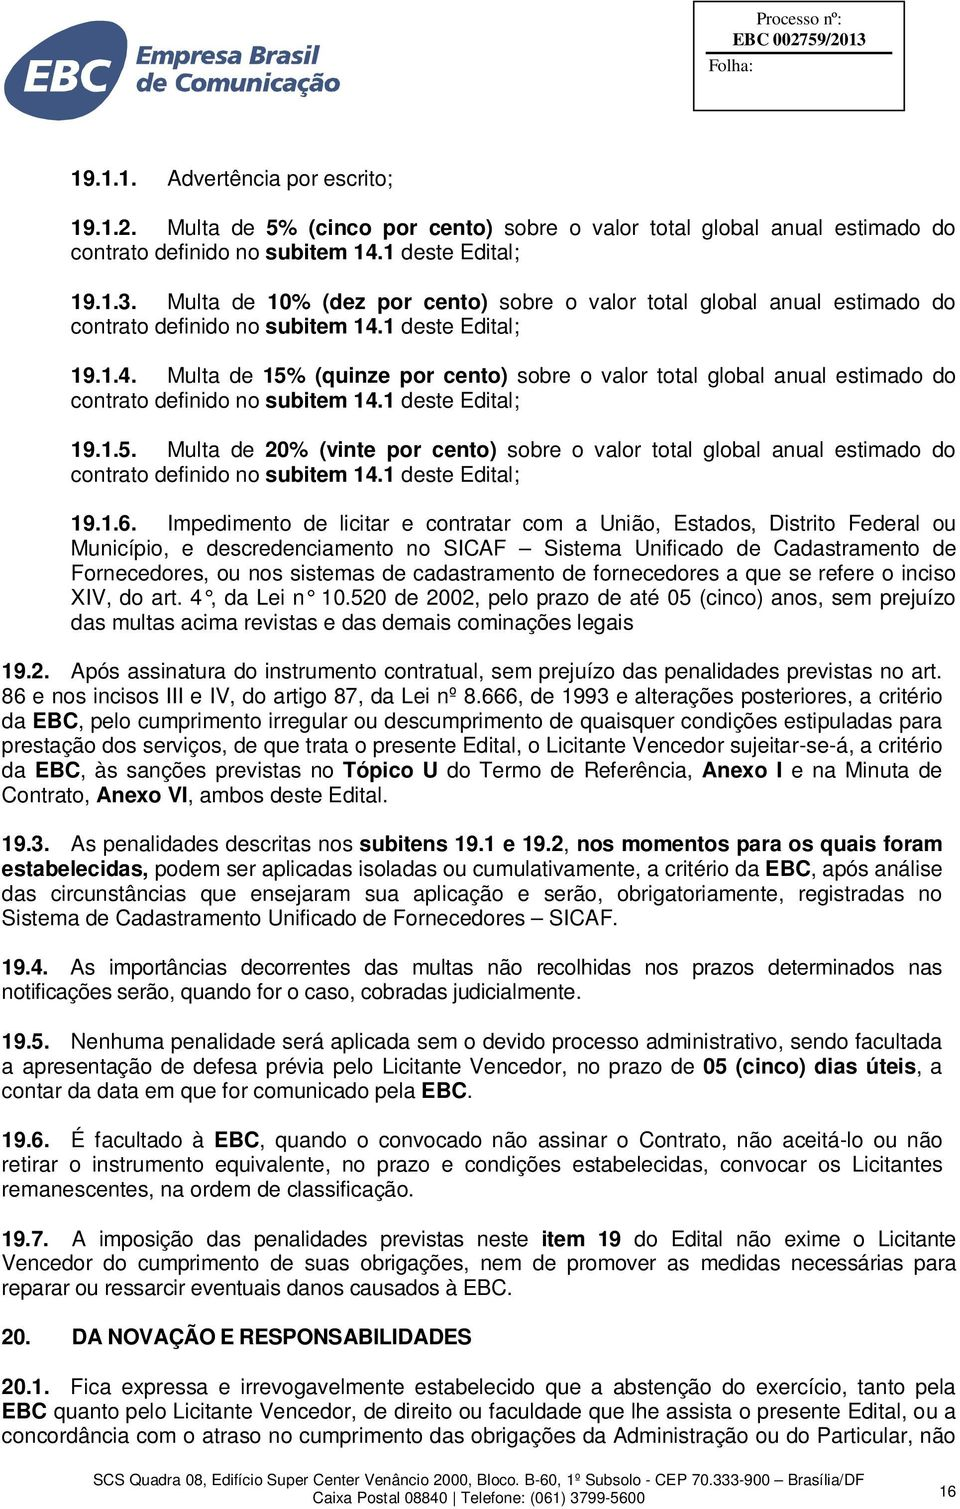 1 deste Edital; 19.1.4. Multa de 15% (quinze por cento) sobre o valor total global anual estimado do contrato definido no subitem 14.1 deste Edital; 19.1.5. Multa de 20% (vinte por cento) sobre o valor total global anual estimado do contrato definido no subitem 14.